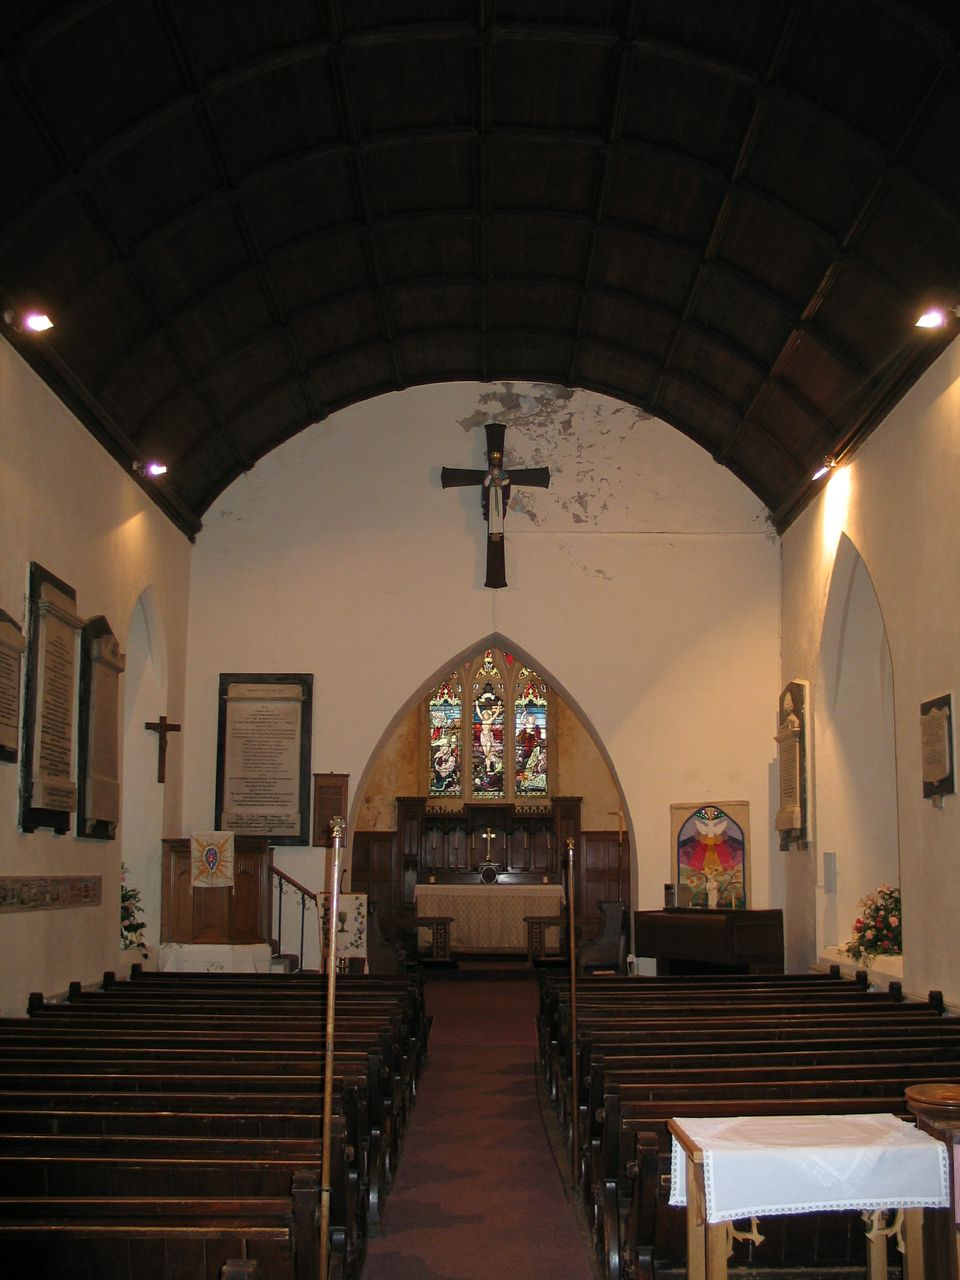 St Barrwg's Bedwas interior